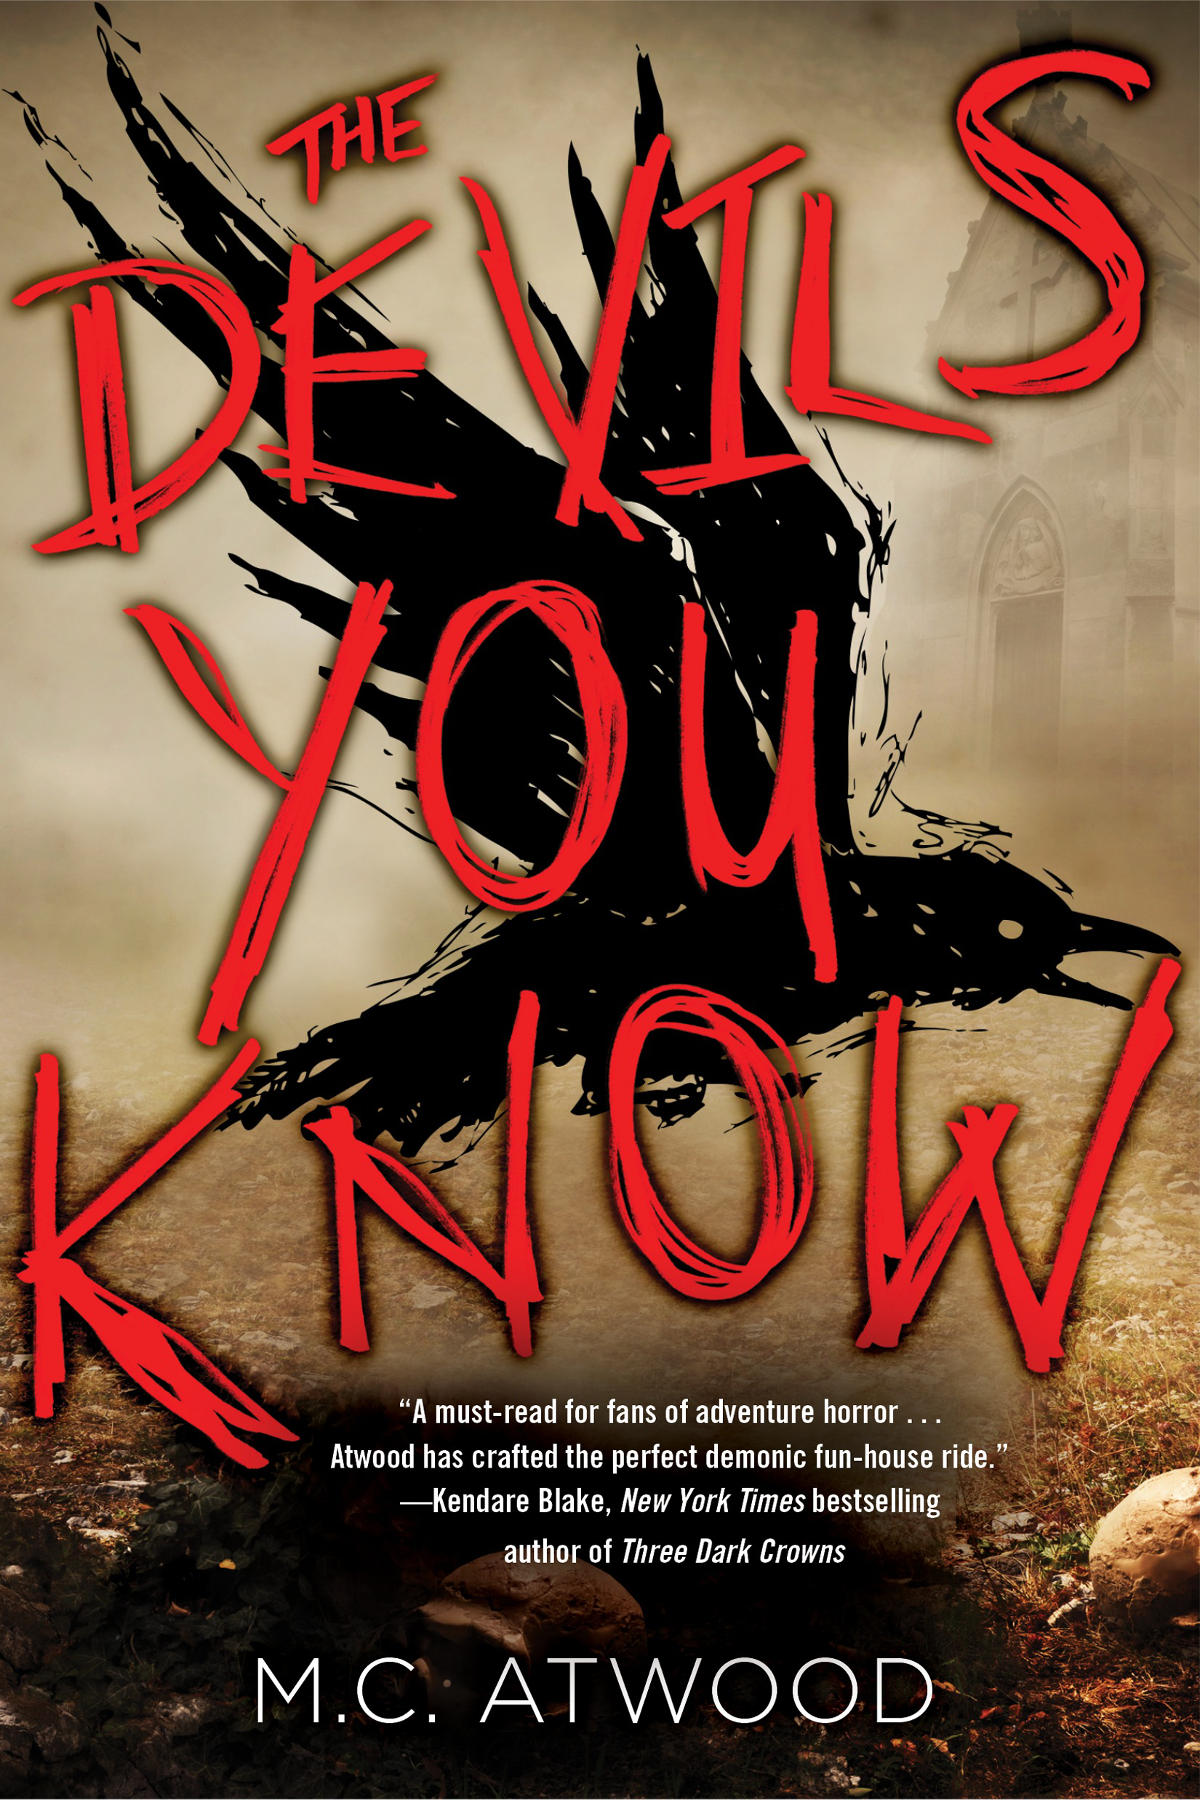 The Devils You Know, by Megan Atwood